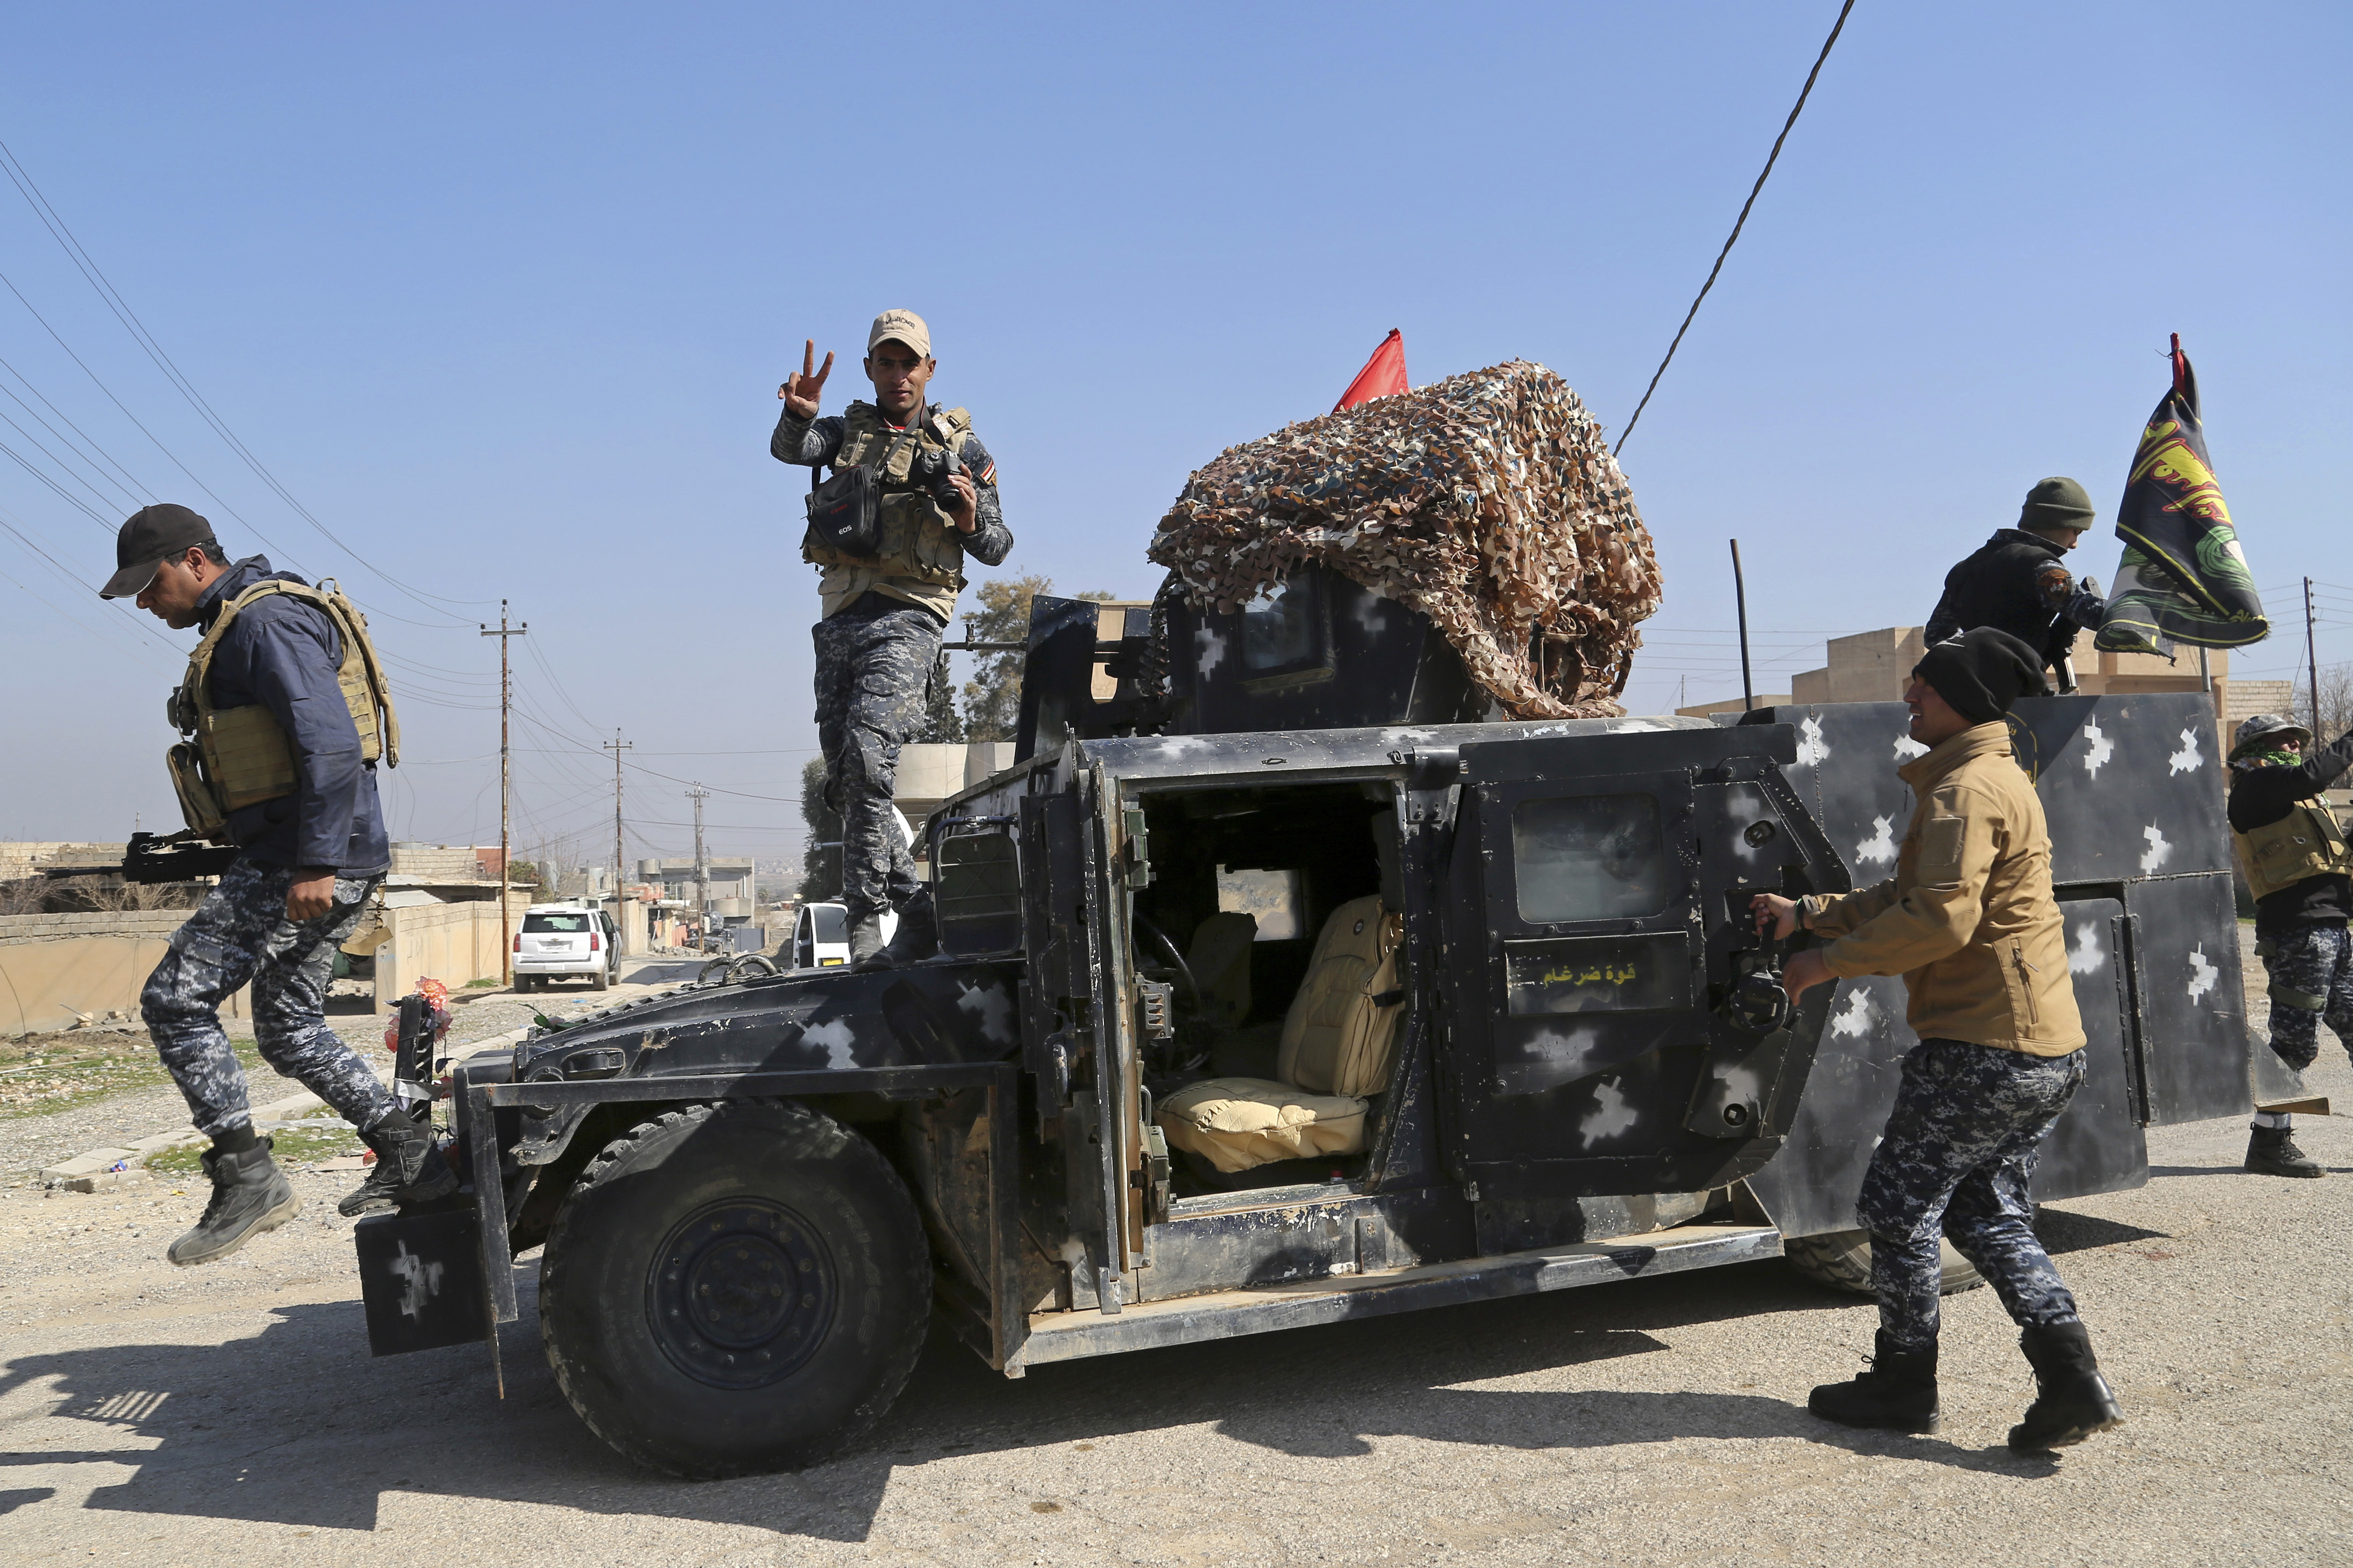 Iraqi Federal police deploy after regaining control of the town of Abu Saif, west of Mosul, Iraq on Feb. 22, 2017. (AP Photo/Khalid Mohammed)